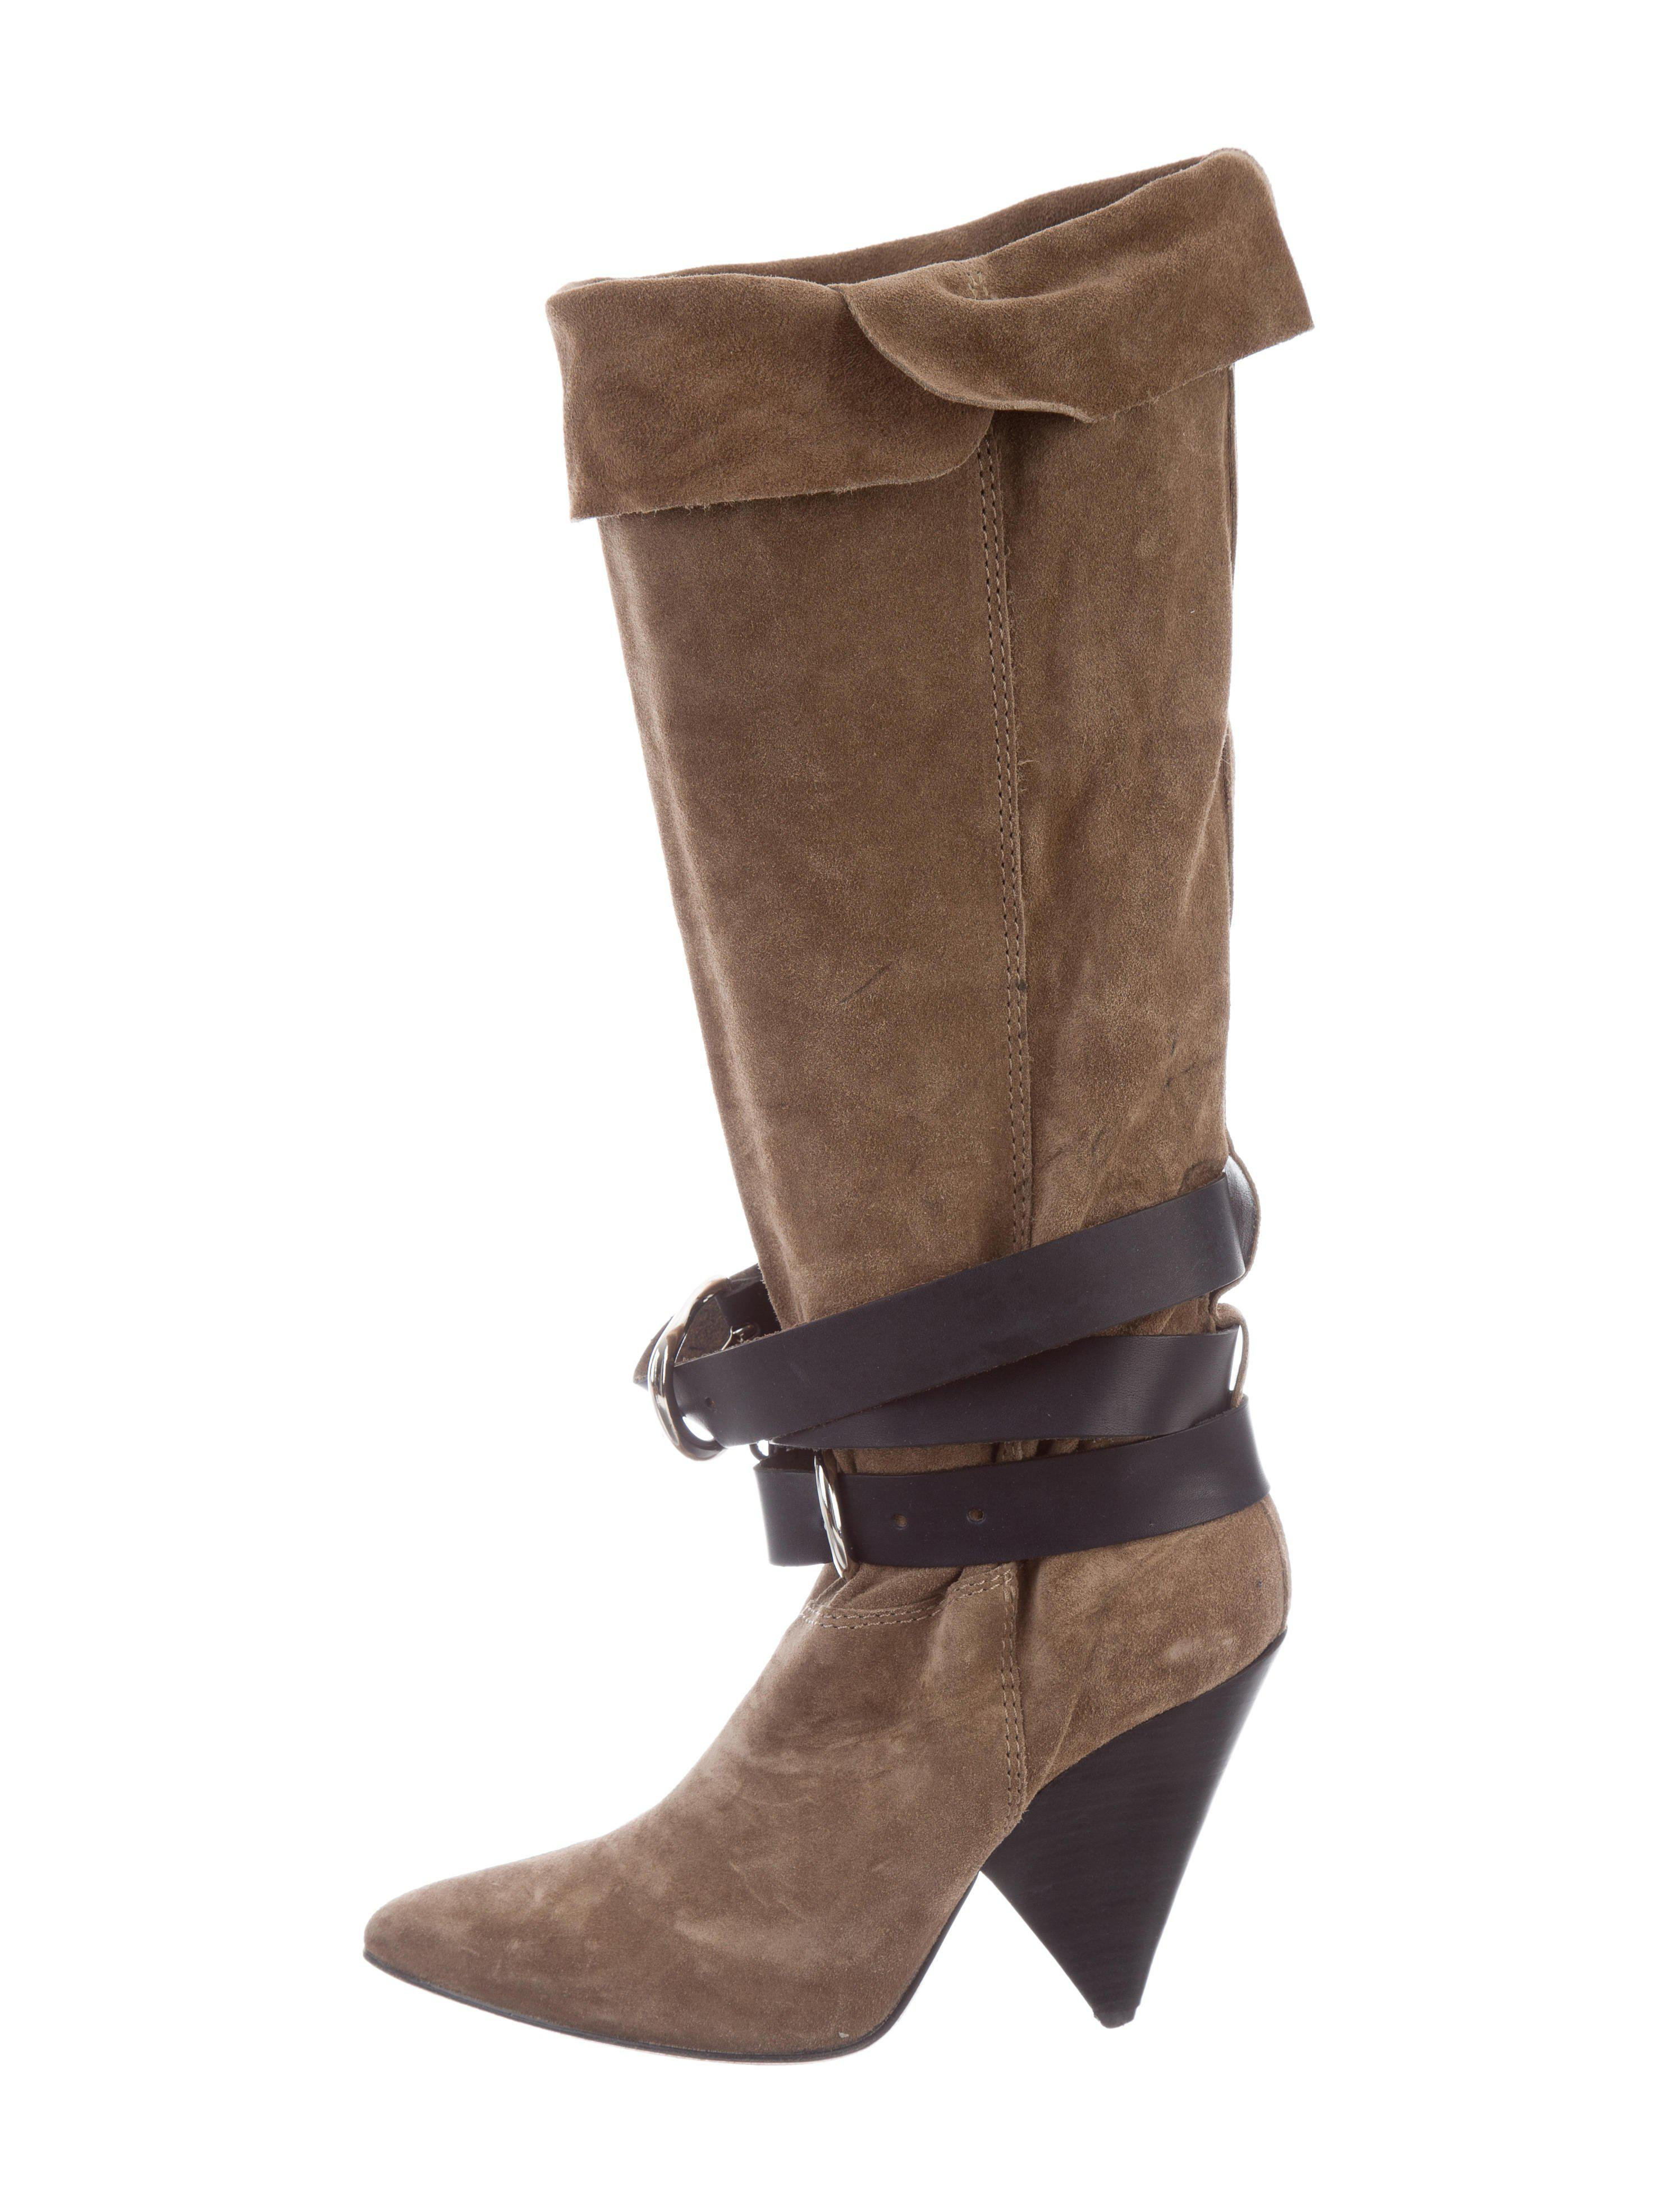 Isabel Marant Ponyhair-Trimmed Mid-Calf Boots cheap sale latest collections clearance find great buy cheap cost nicekicks online cReeZMuXj